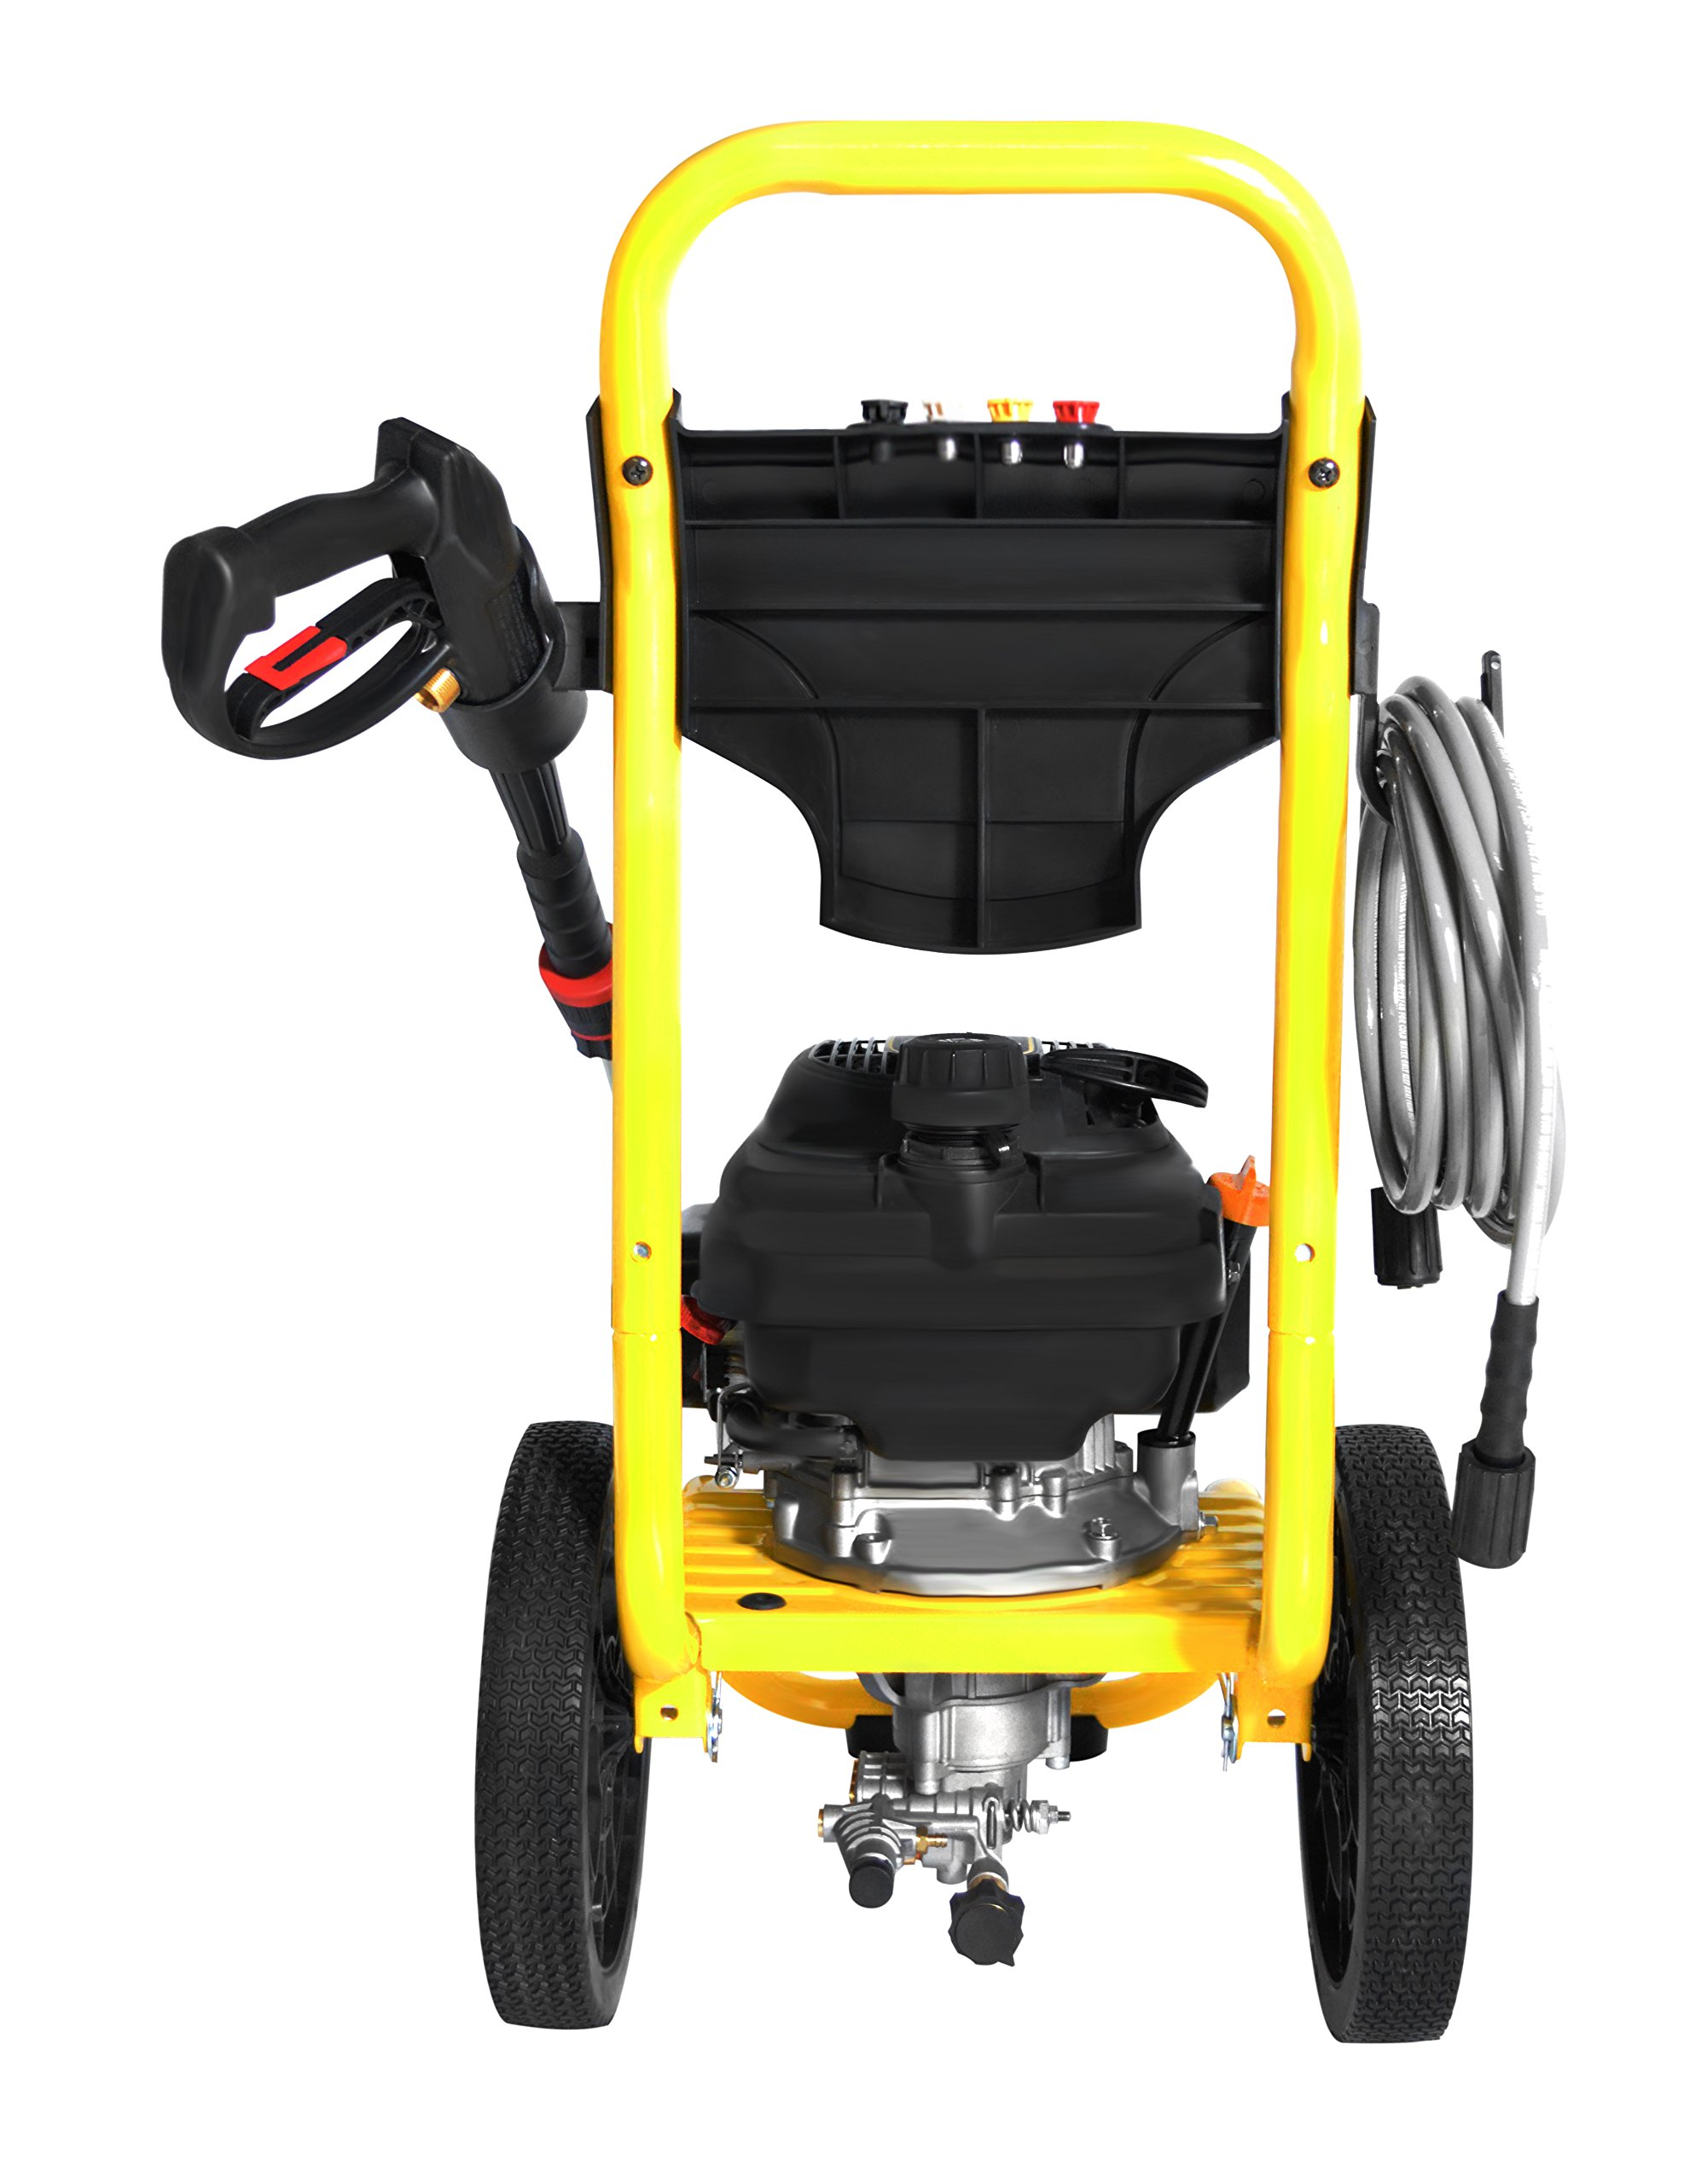 STANLEY SXPW2823 2800 PSI @ 2.3 GPM Gas Pressure Washer Powered by STANLEY (50-State) by Stanley (Image #2)